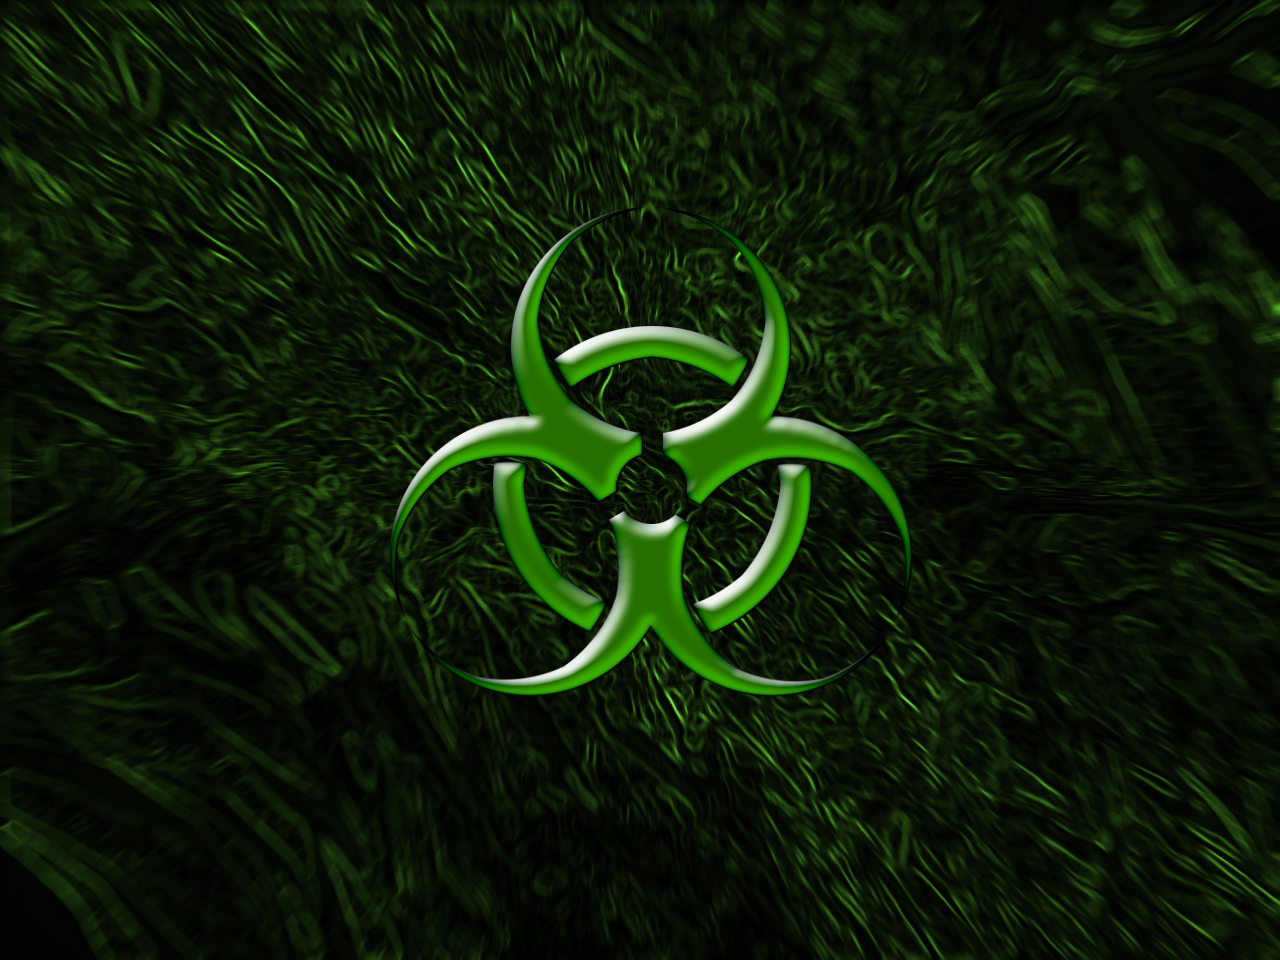 BioHazard Green by GrimreapeR1990 on DeviantArt